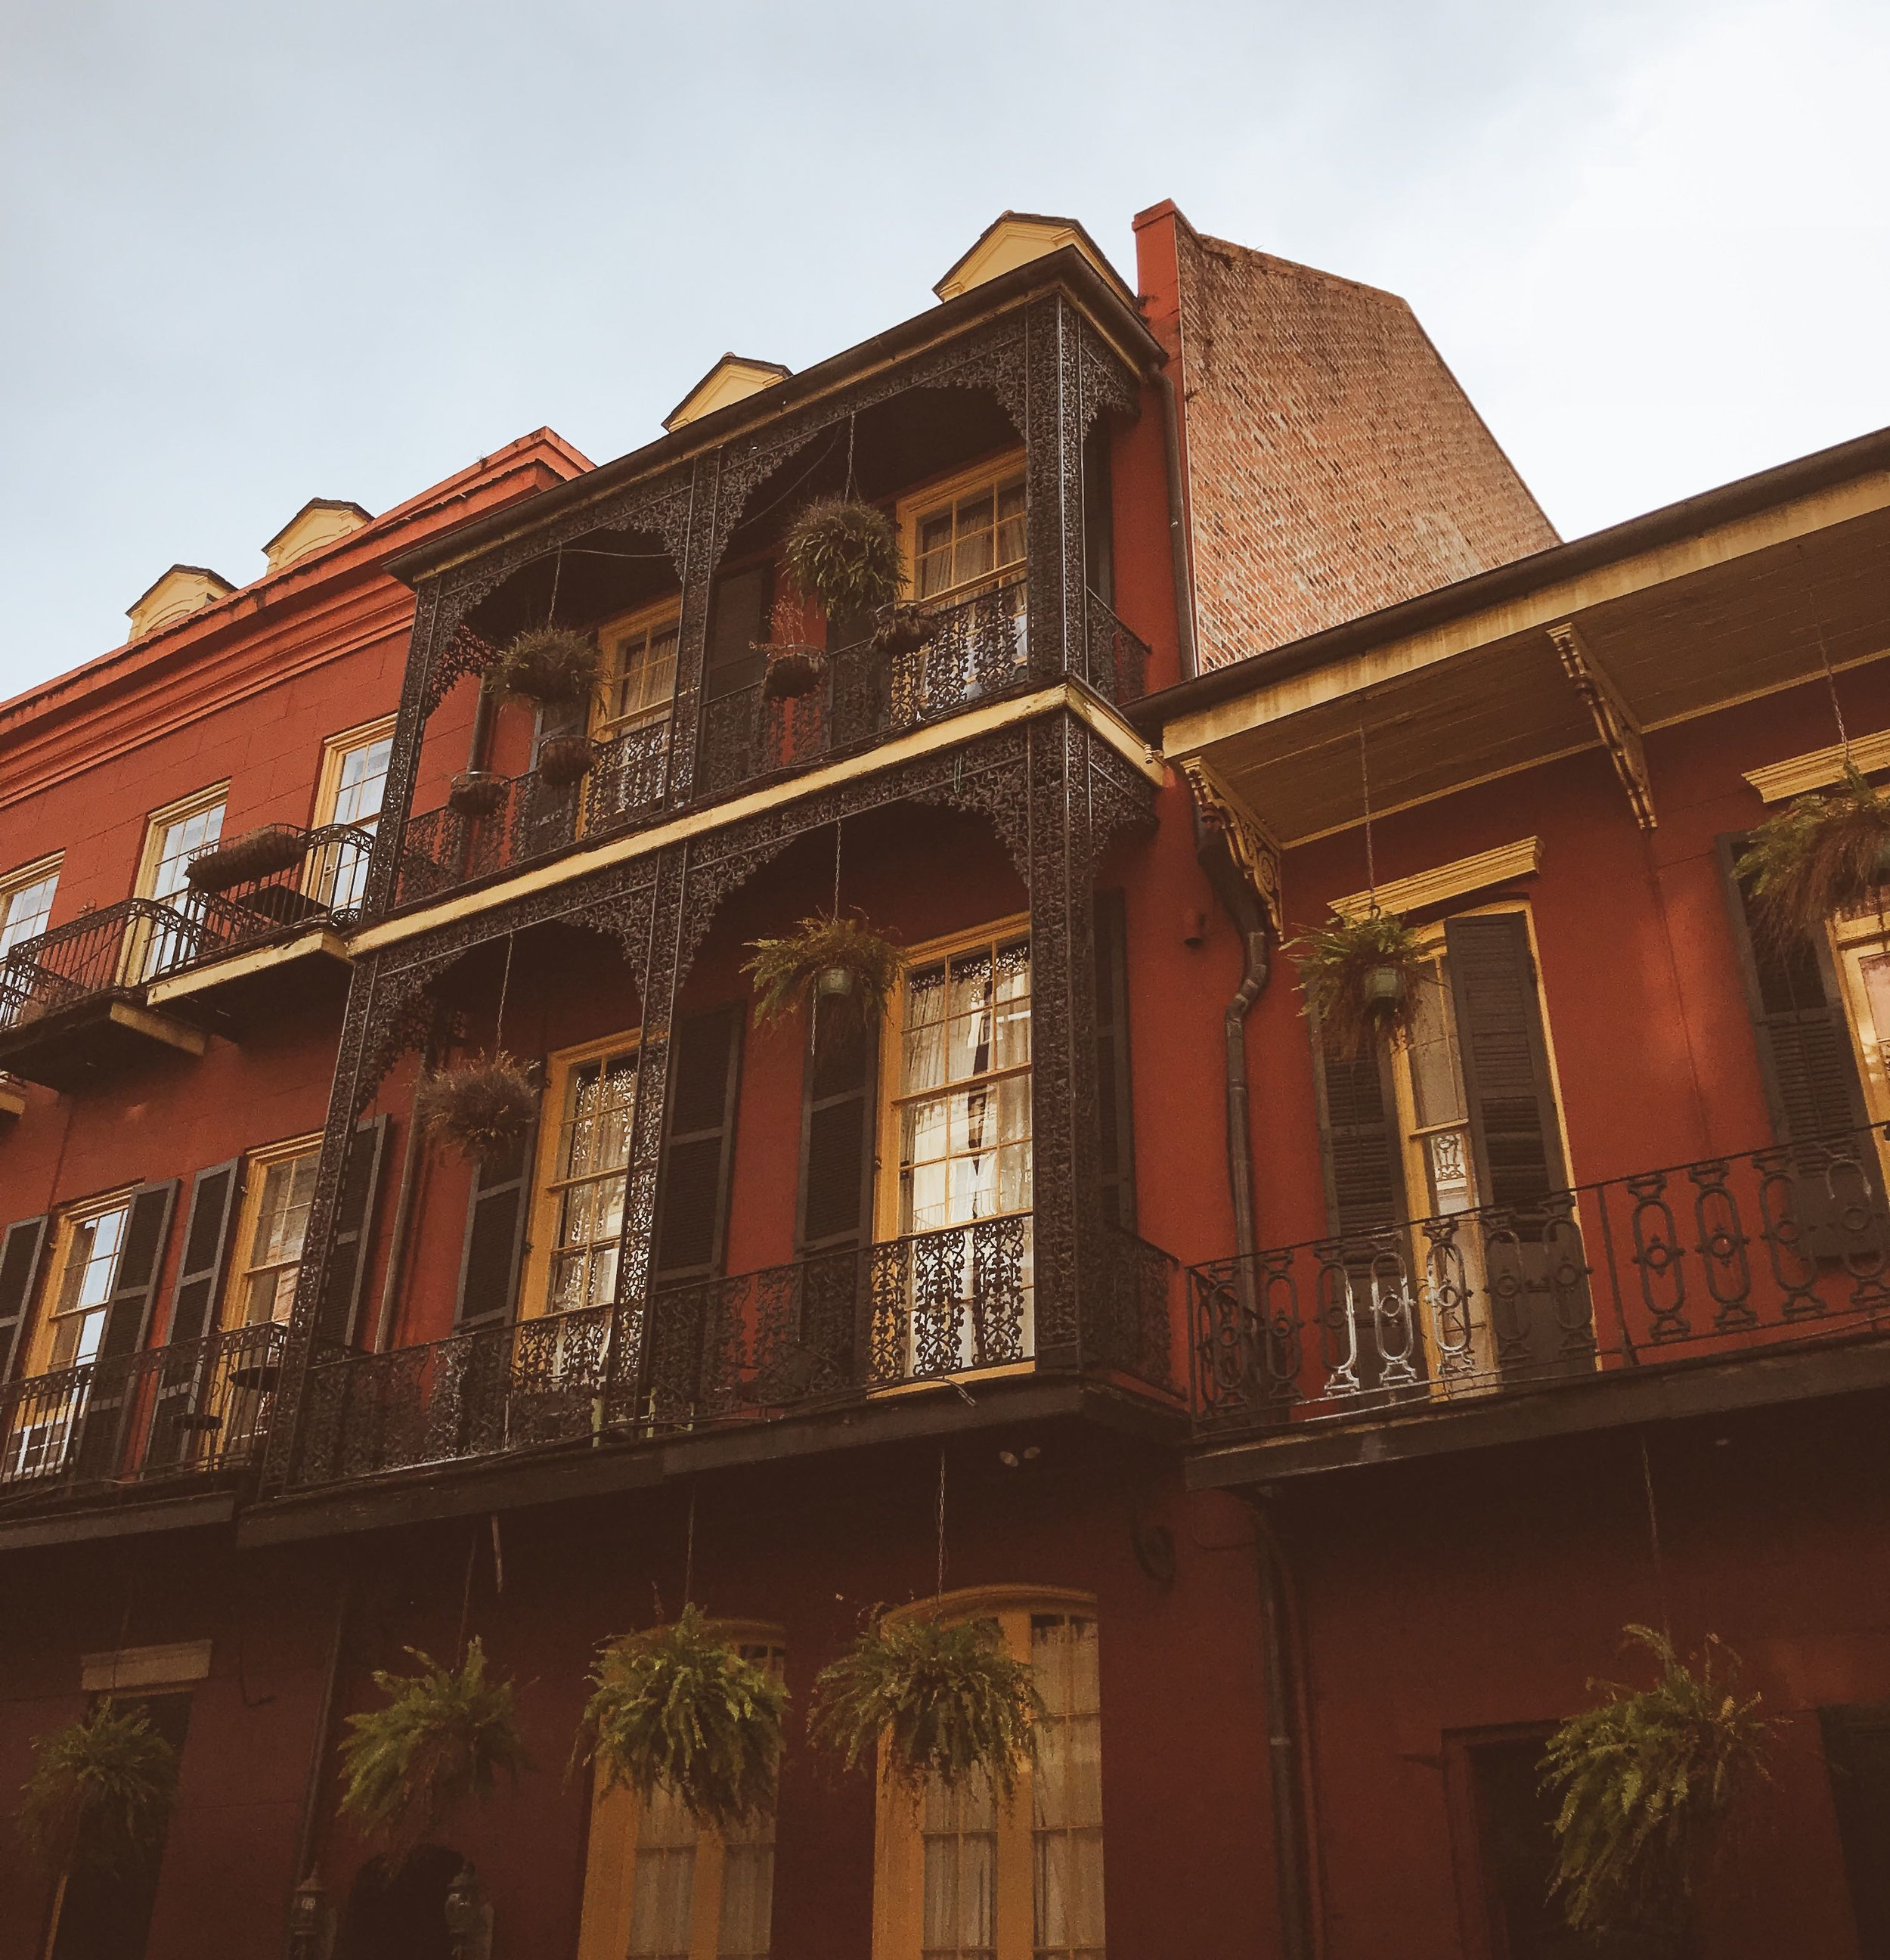 french quarter in December by Oui We | Andi Eaton